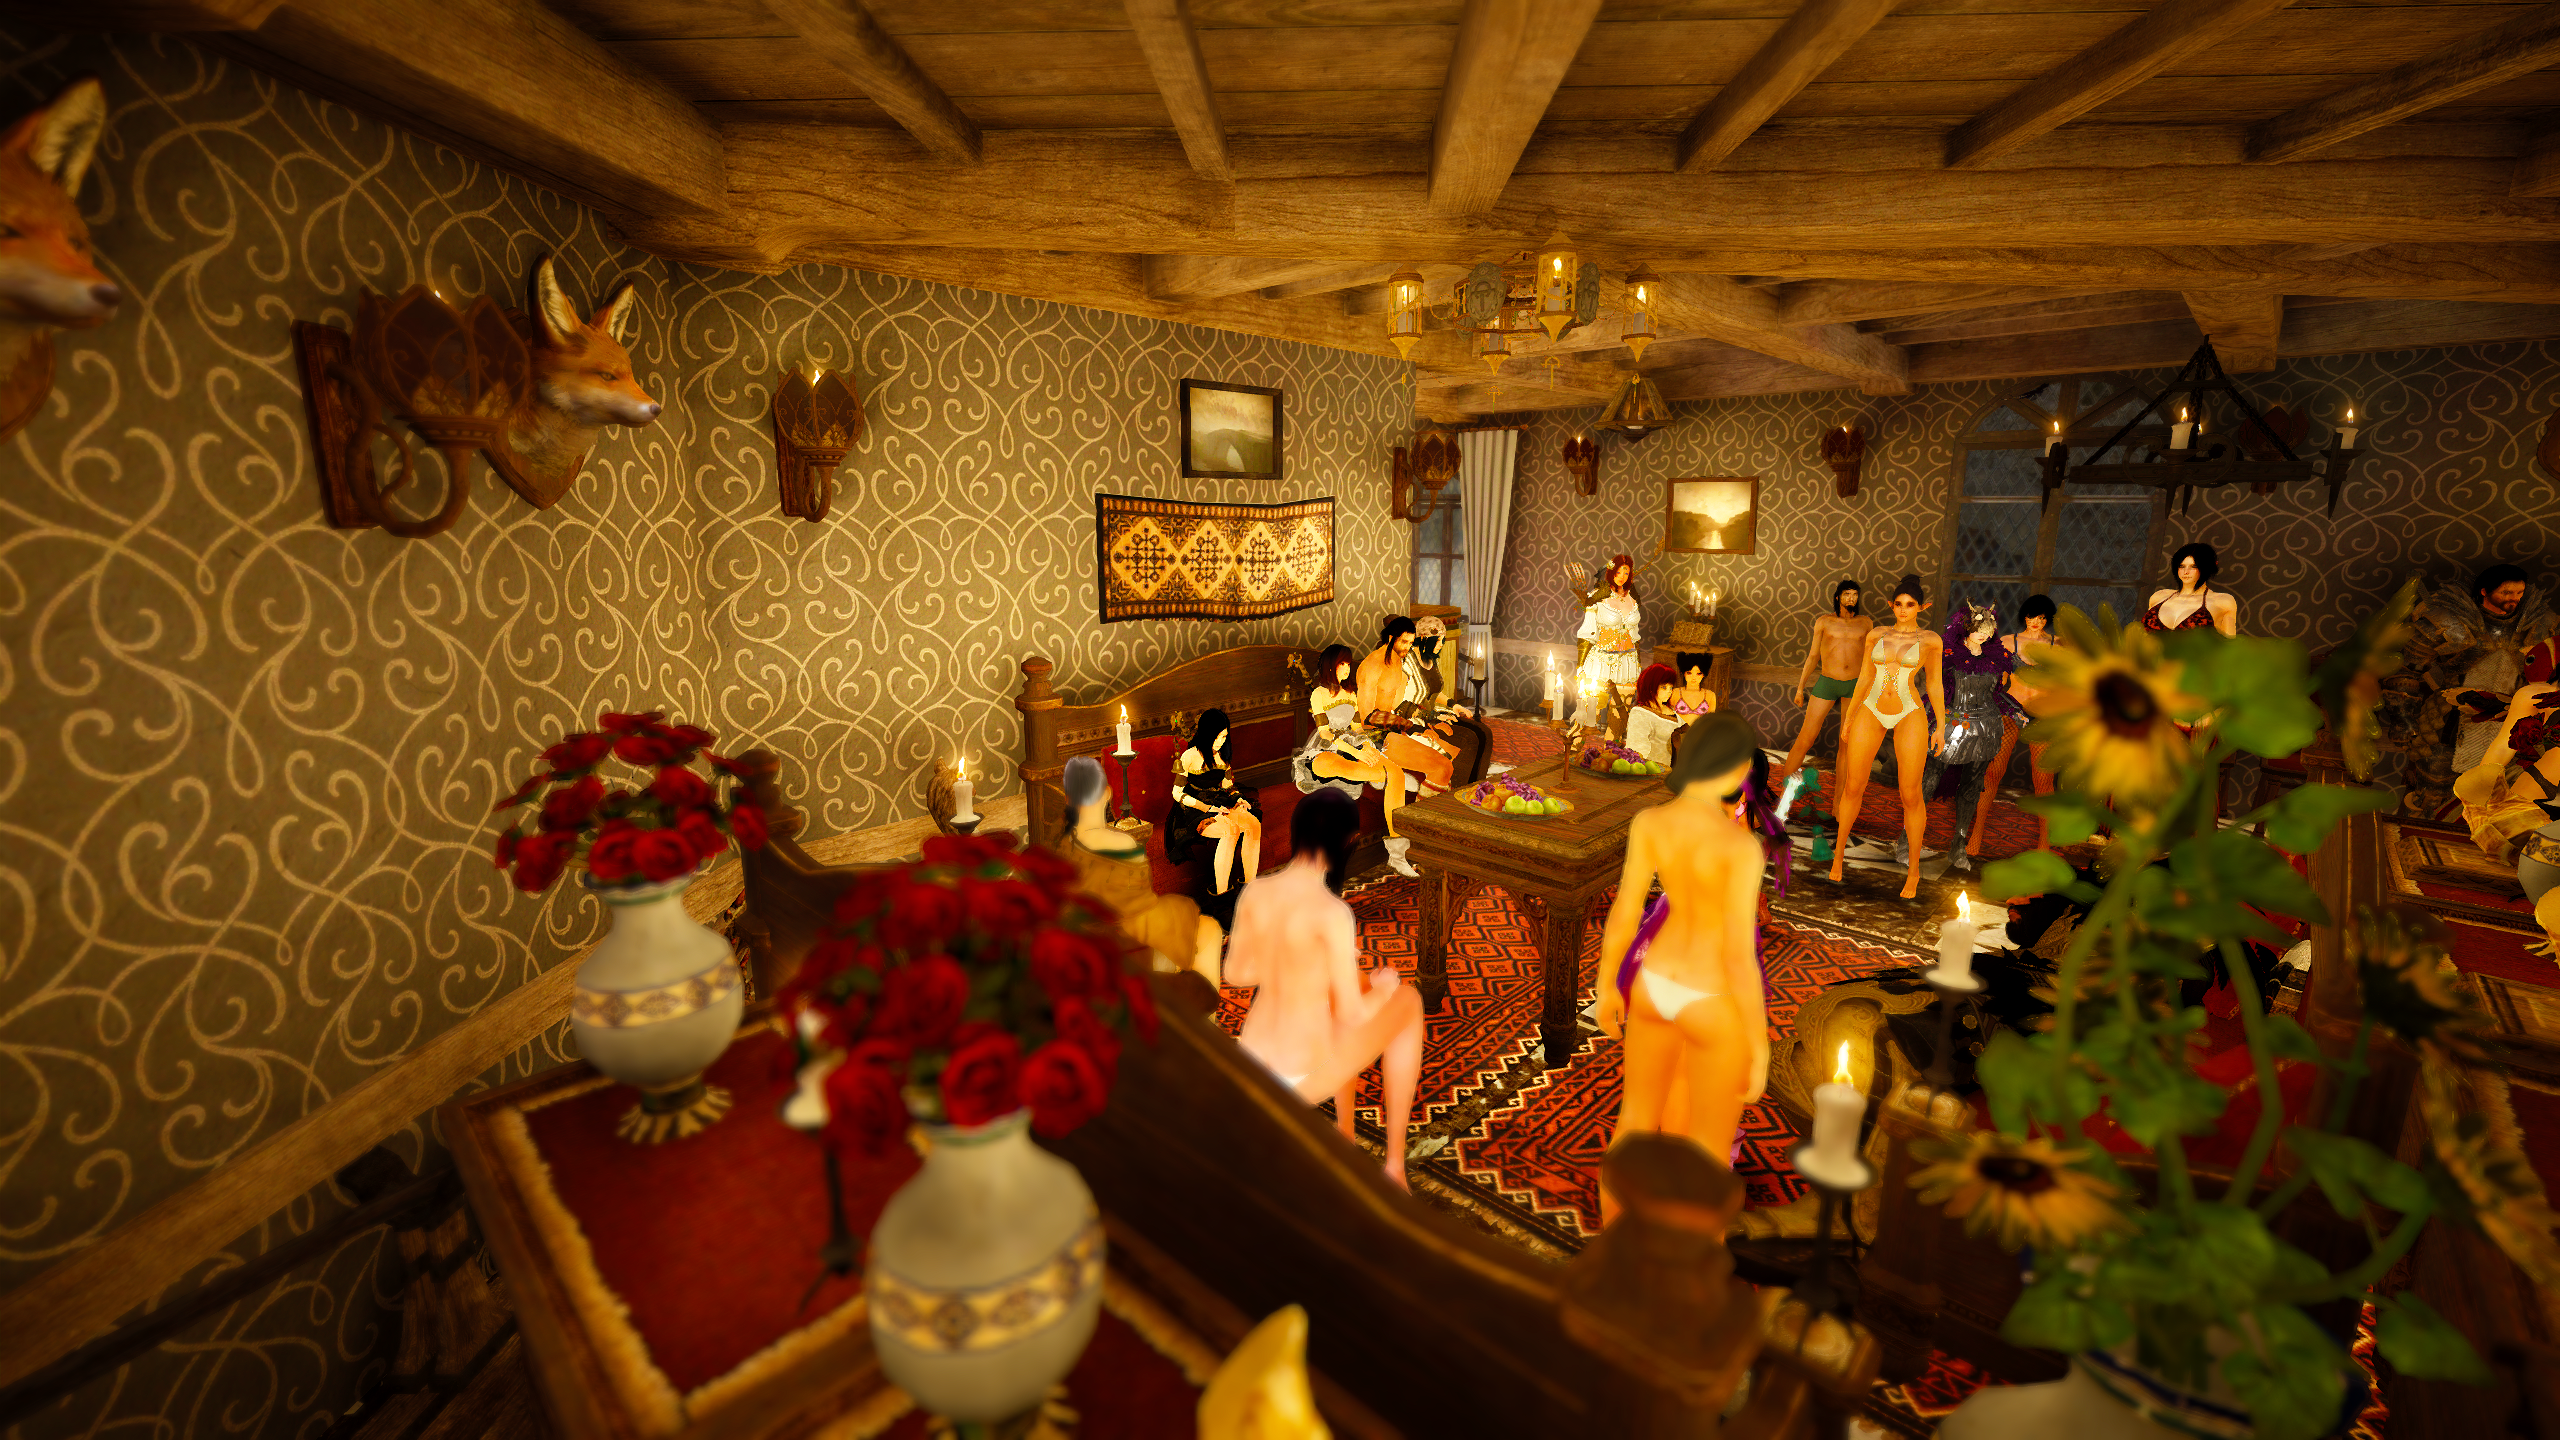 House Party 2 in the album Black Desert Screenshots by